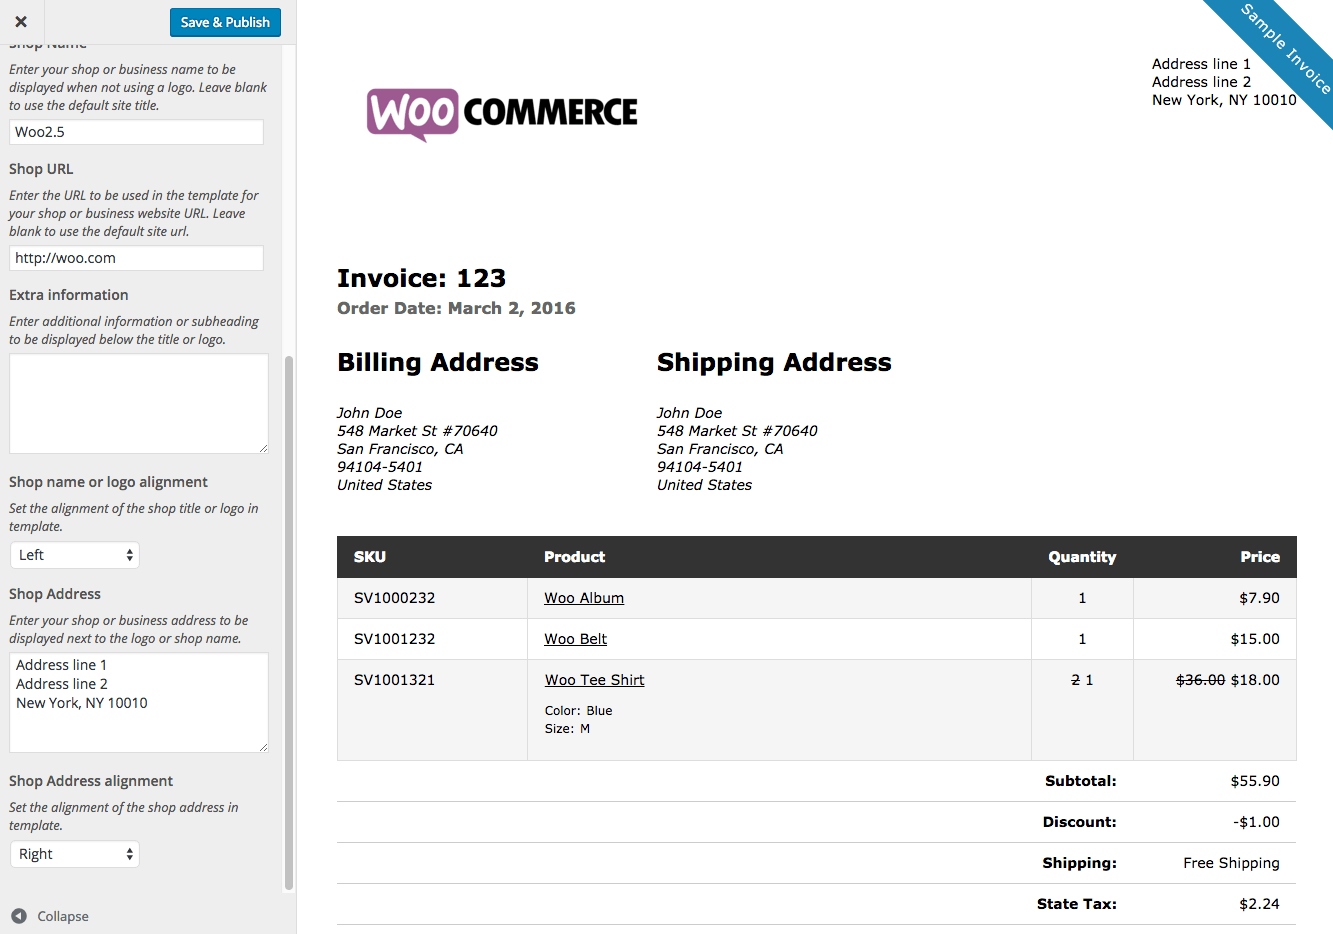 Hius  Wonderful Print Invoices Amp Packing Lists  Woocommerce With Heavenly Woocommerce Print Invoices  Packing Lists Customizer With Enchanting Read Receipt Outlook  Mac Also How To File Receipts For Business In Addition Legal Receipt Of Payment Template And App For Tax Receipts As Well As Format Of Receipt And Payment Account Additionally Receipt Tax From Woocommercecom With Hius  Heavenly Print Invoices Amp Packing Lists  Woocommerce With Enchanting Woocommerce Print Invoices  Packing Lists Customizer And Wonderful Read Receipt Outlook  Mac Also How To File Receipts For Business In Addition Legal Receipt Of Payment Template From Woocommercecom